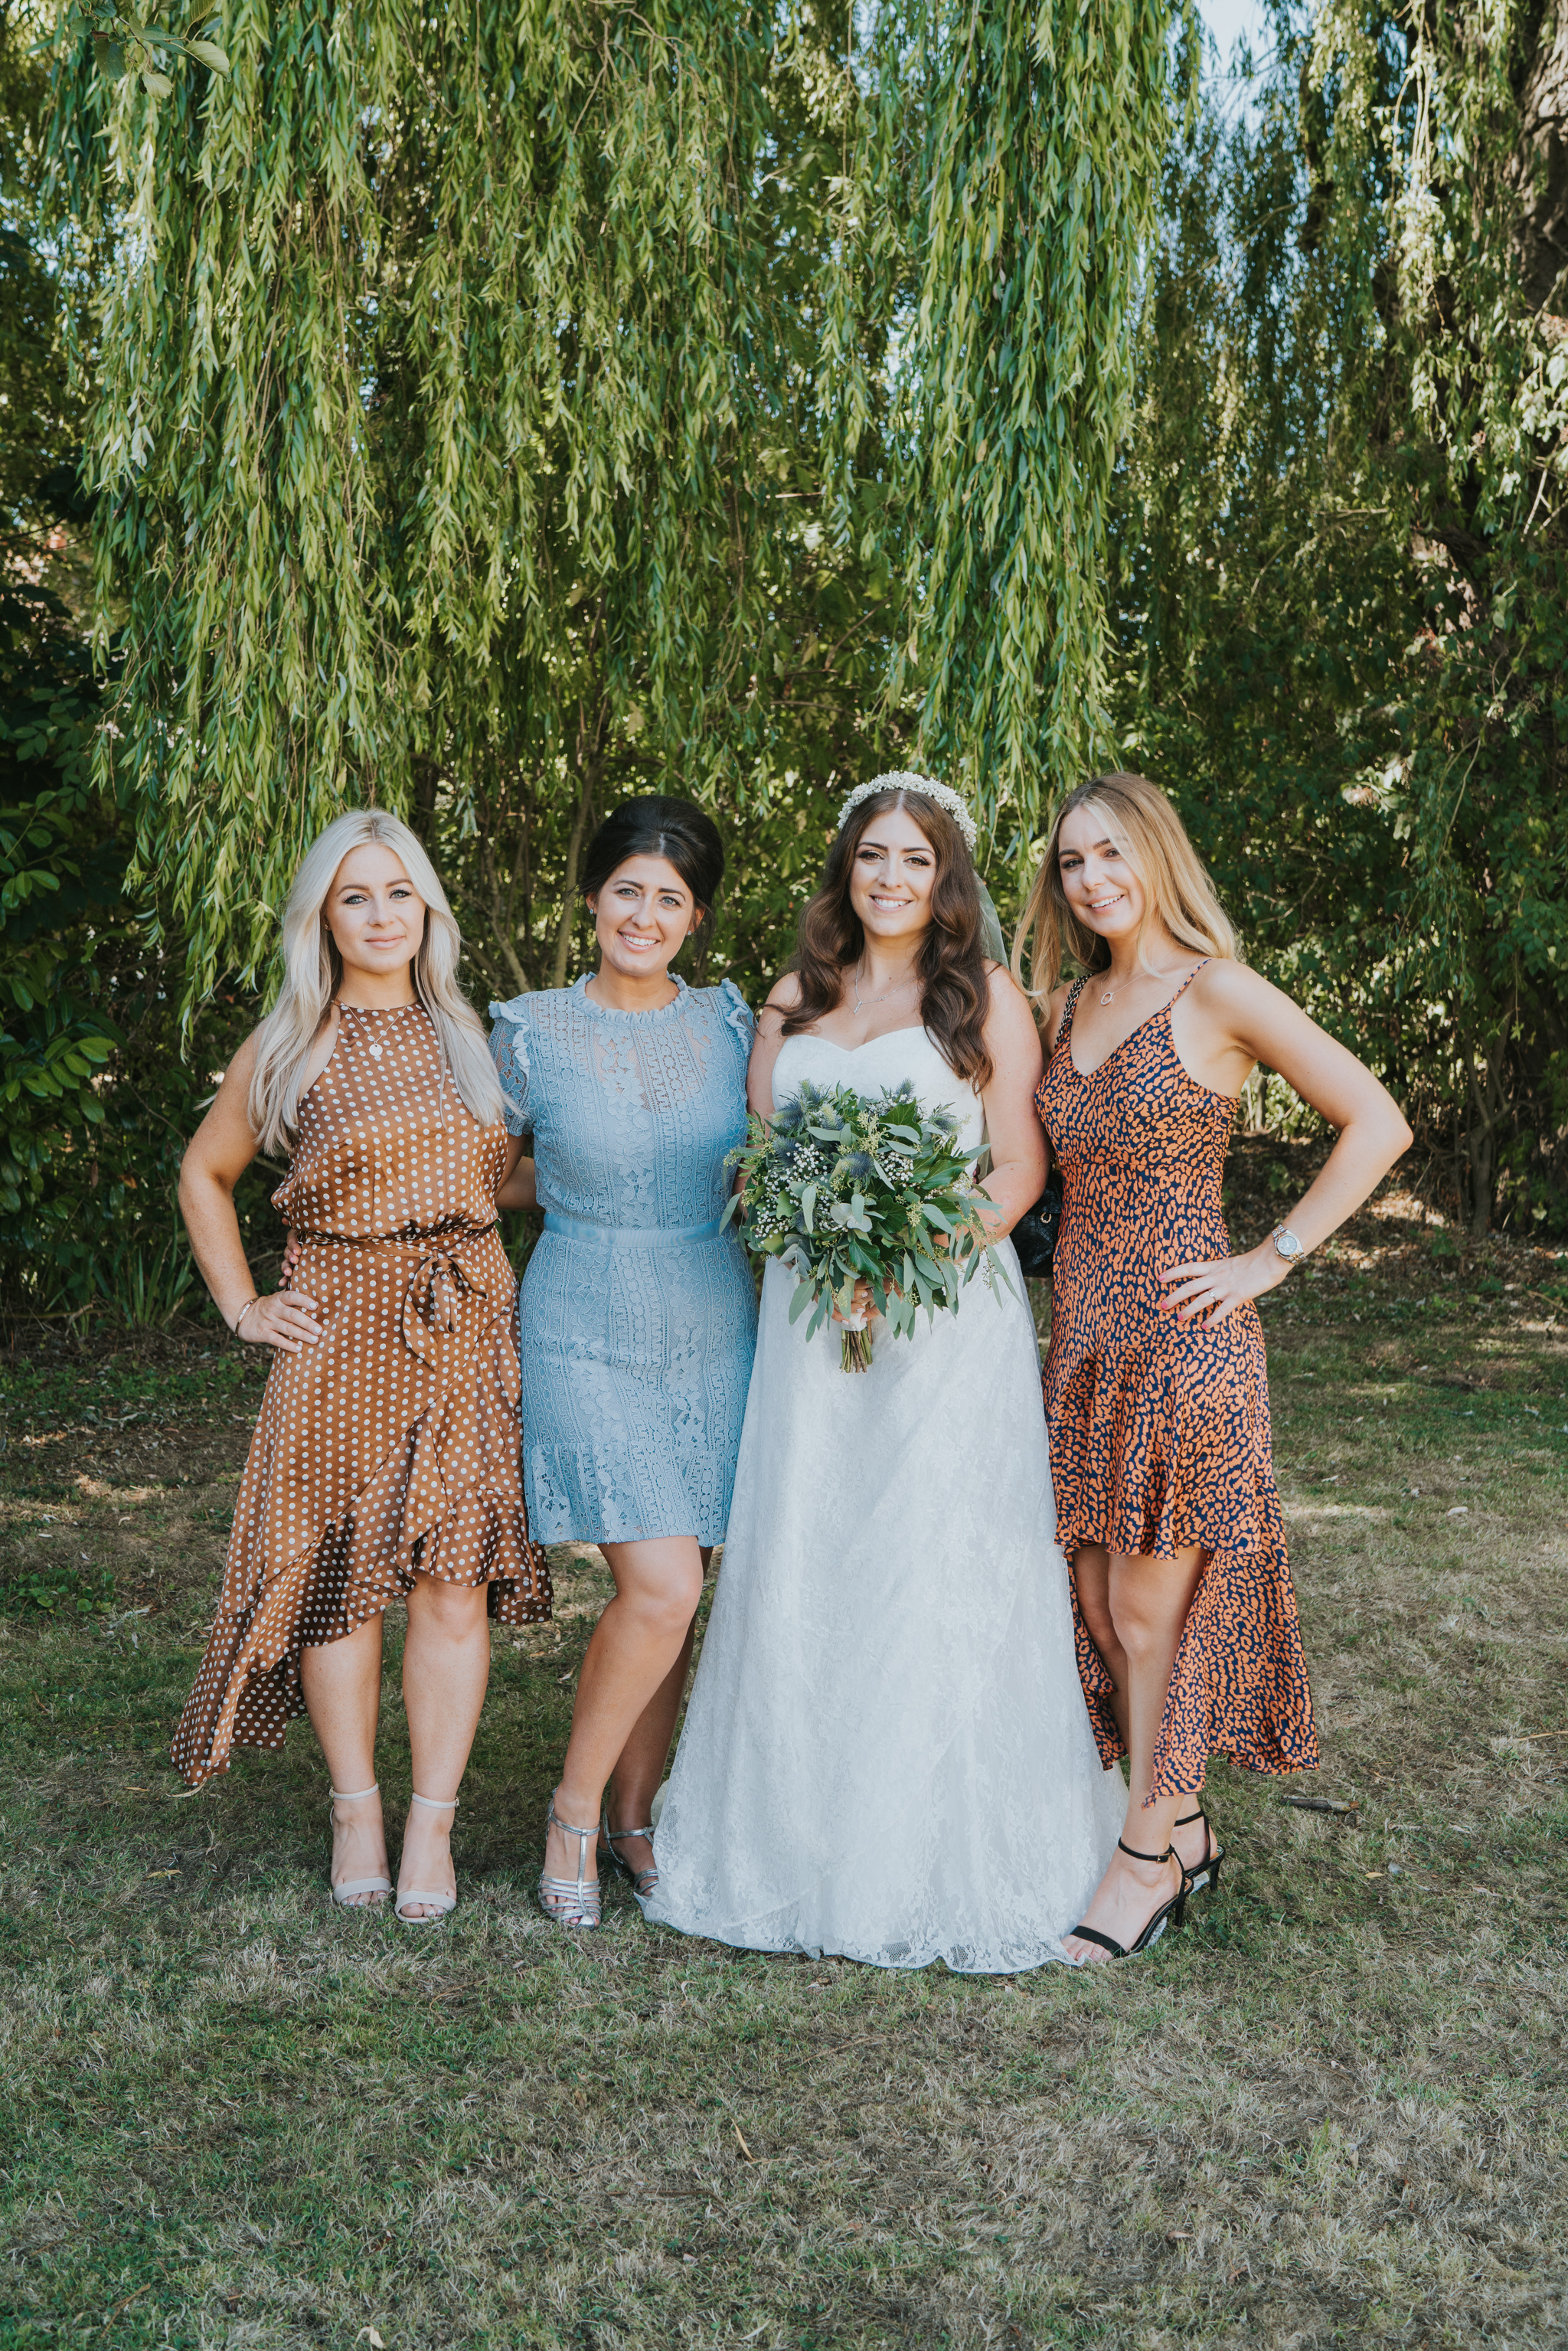 Sophie-Christian-Prested-Hall-DIY-Boho-Outdoor-Wedding-Grace-Elizabeth-Alternative-Wedding-Photographer-Colchester-Essex (83 of 113).jpg